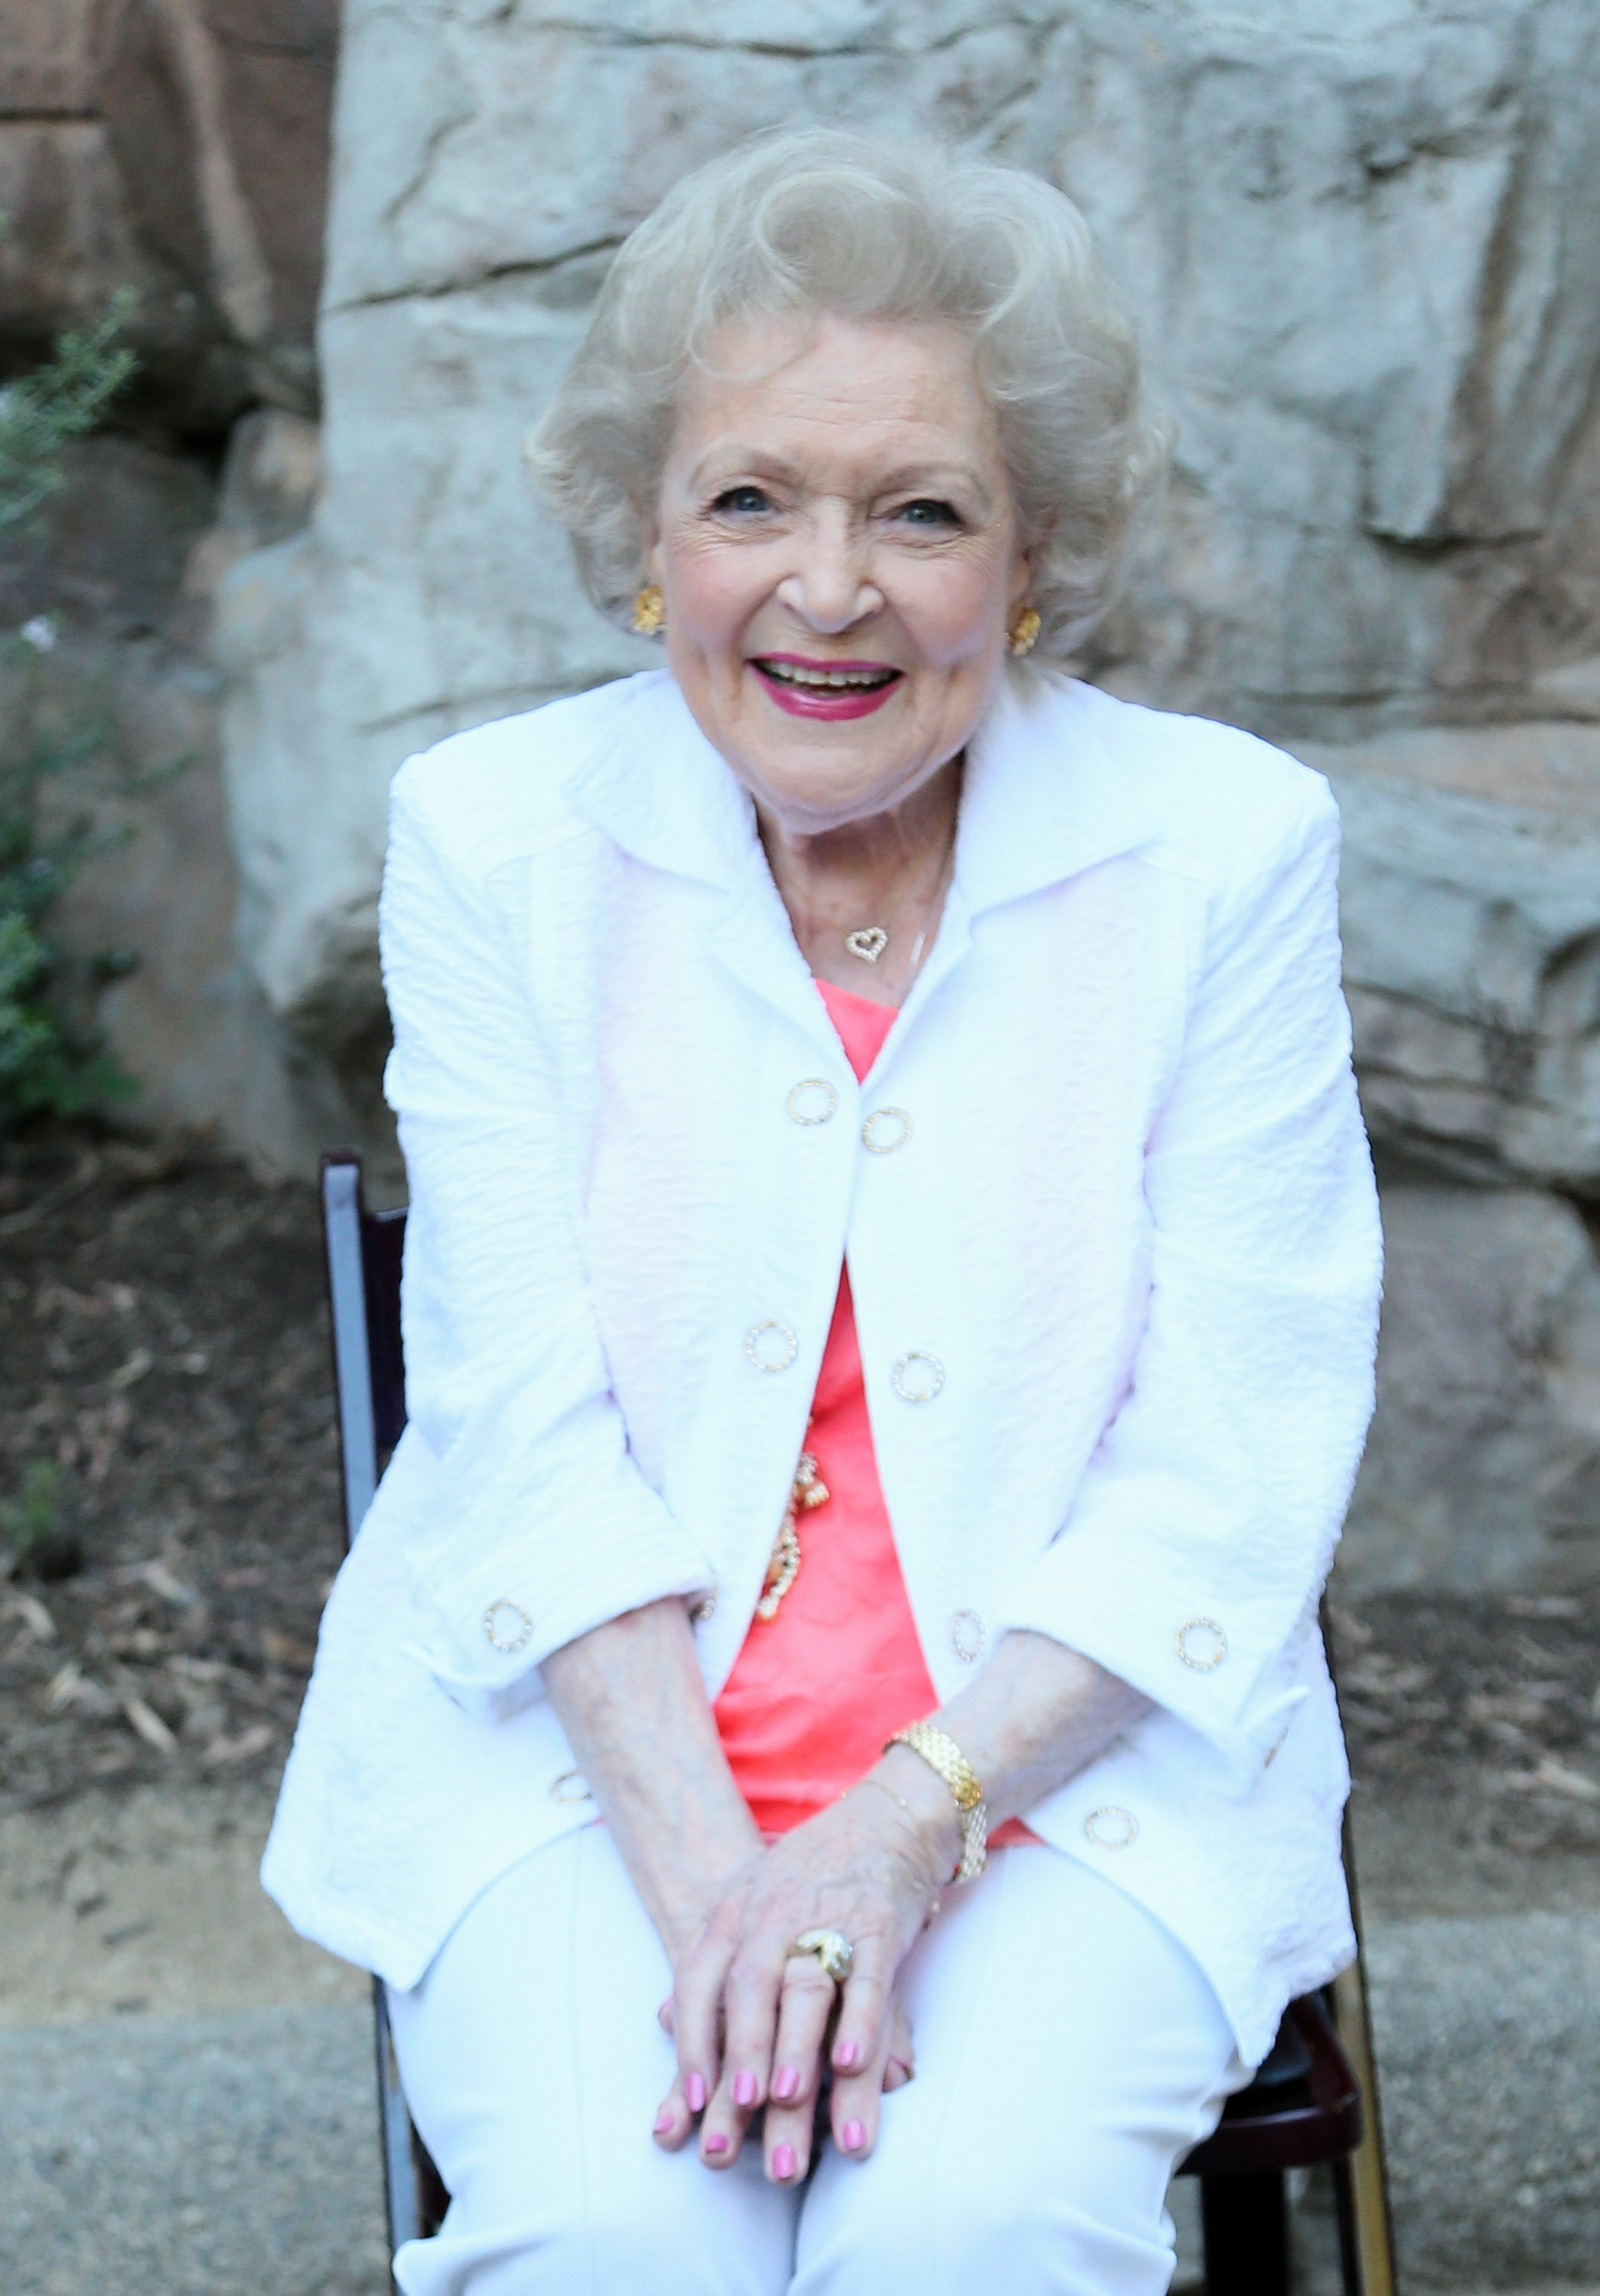 Betty White attends the Greater Los Angeles Zoo Association's (GLAZA) 45th Annual Beastly Ball. | Source: Getty Images